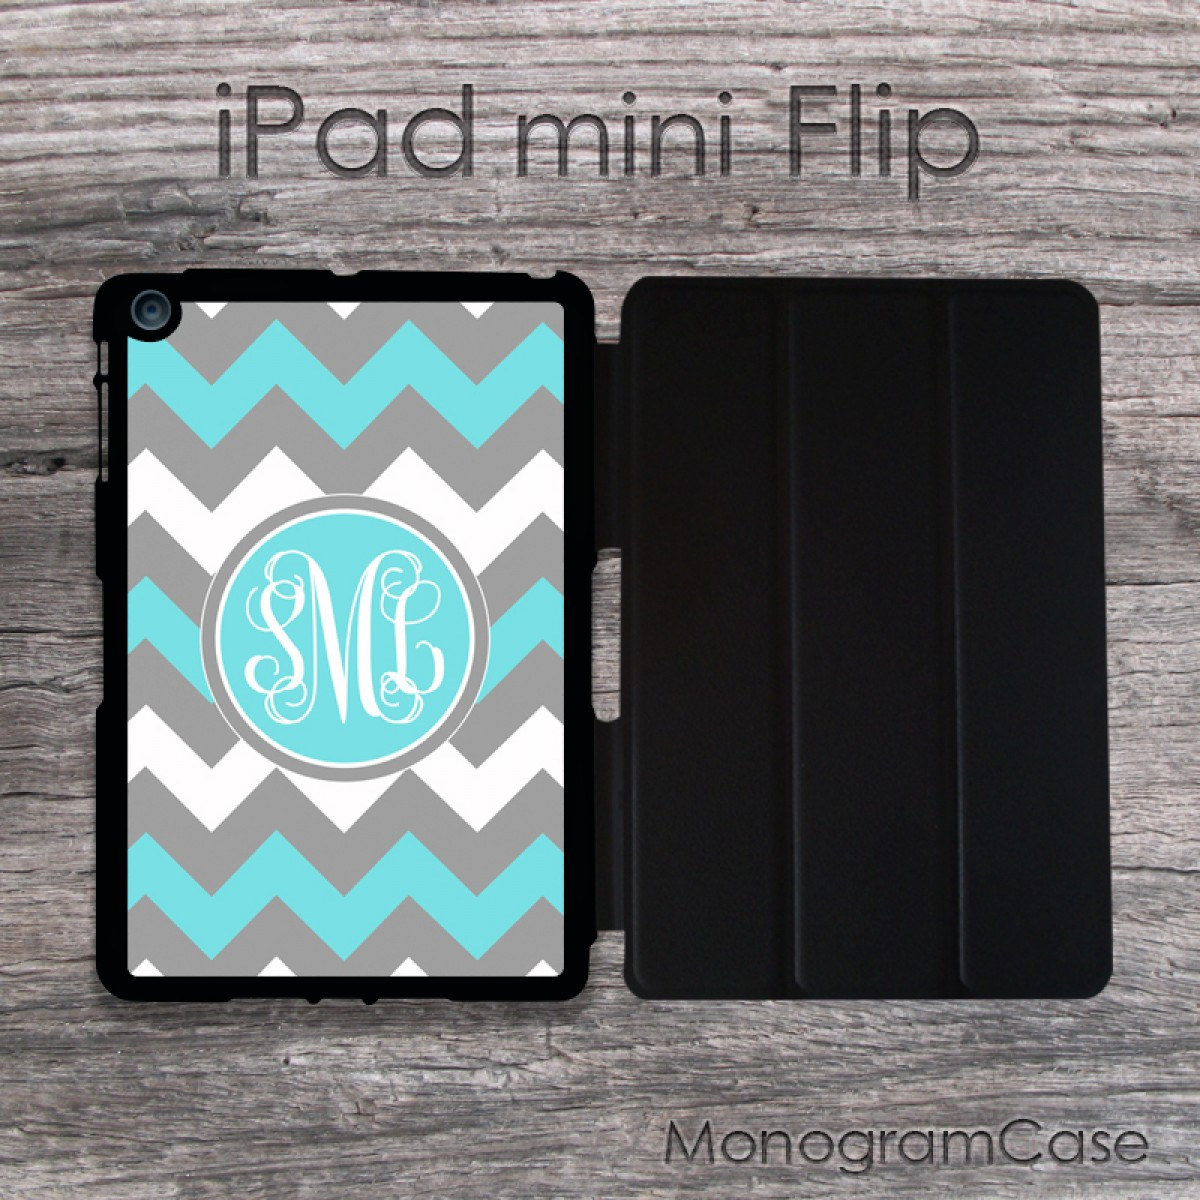 Ipad Mini Case Grey And Soft Blue Chevron With Fancy Monogram